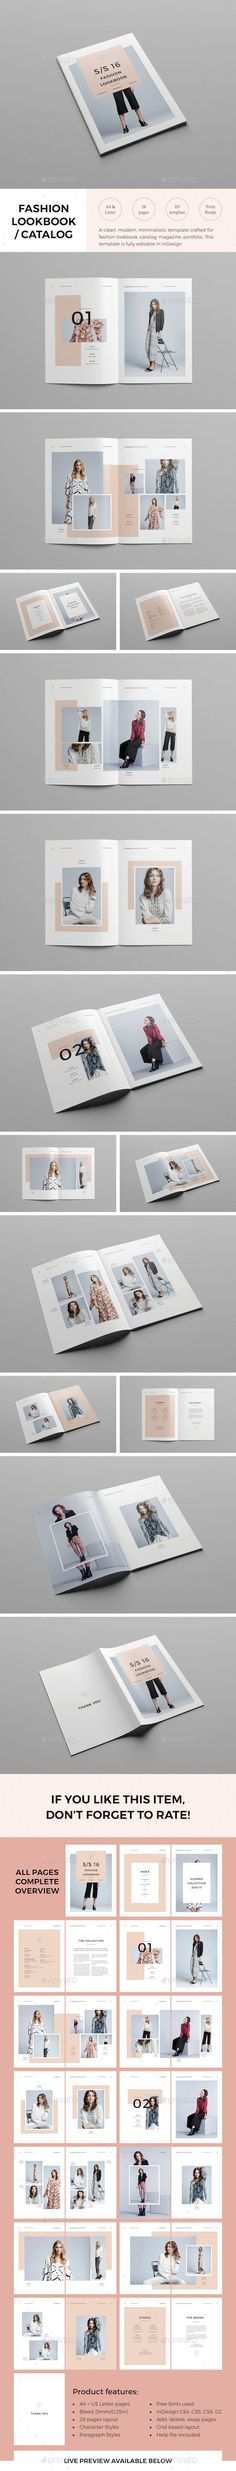 Lookbook Template InDesign INDD. Download here: